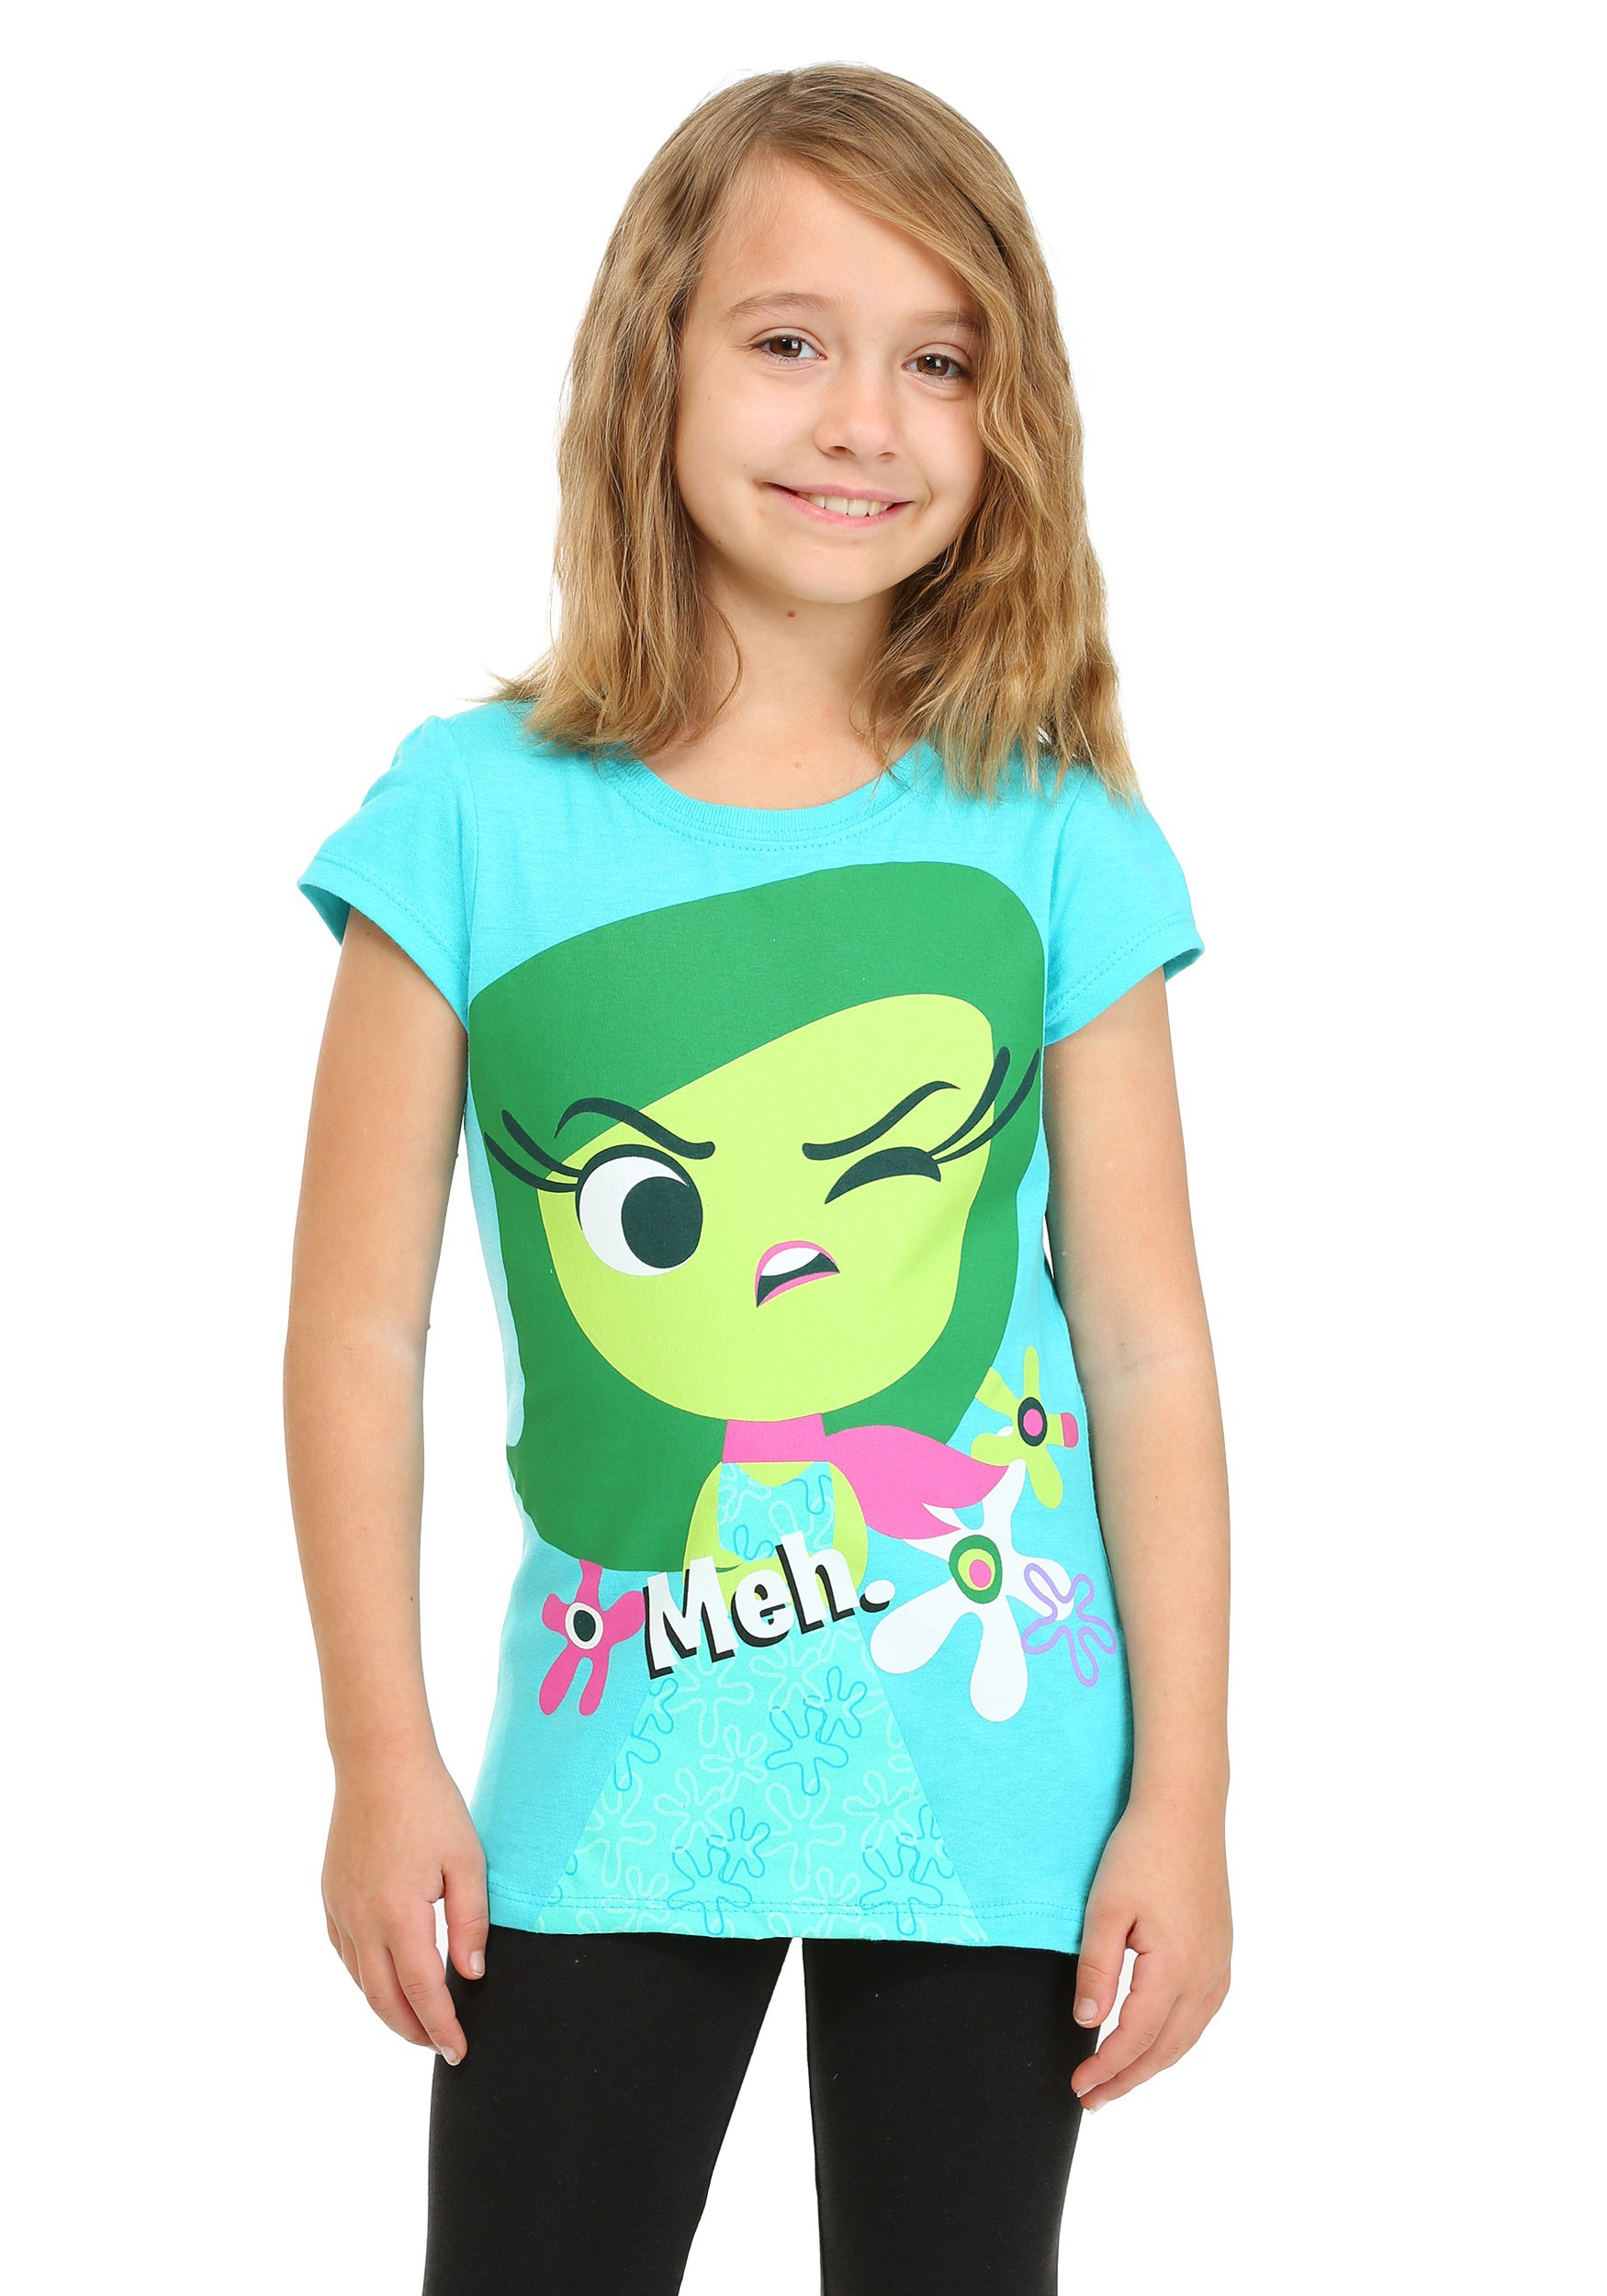 Girls Inside Out Disgust Meh Shirt CAPXPB9610FSTK